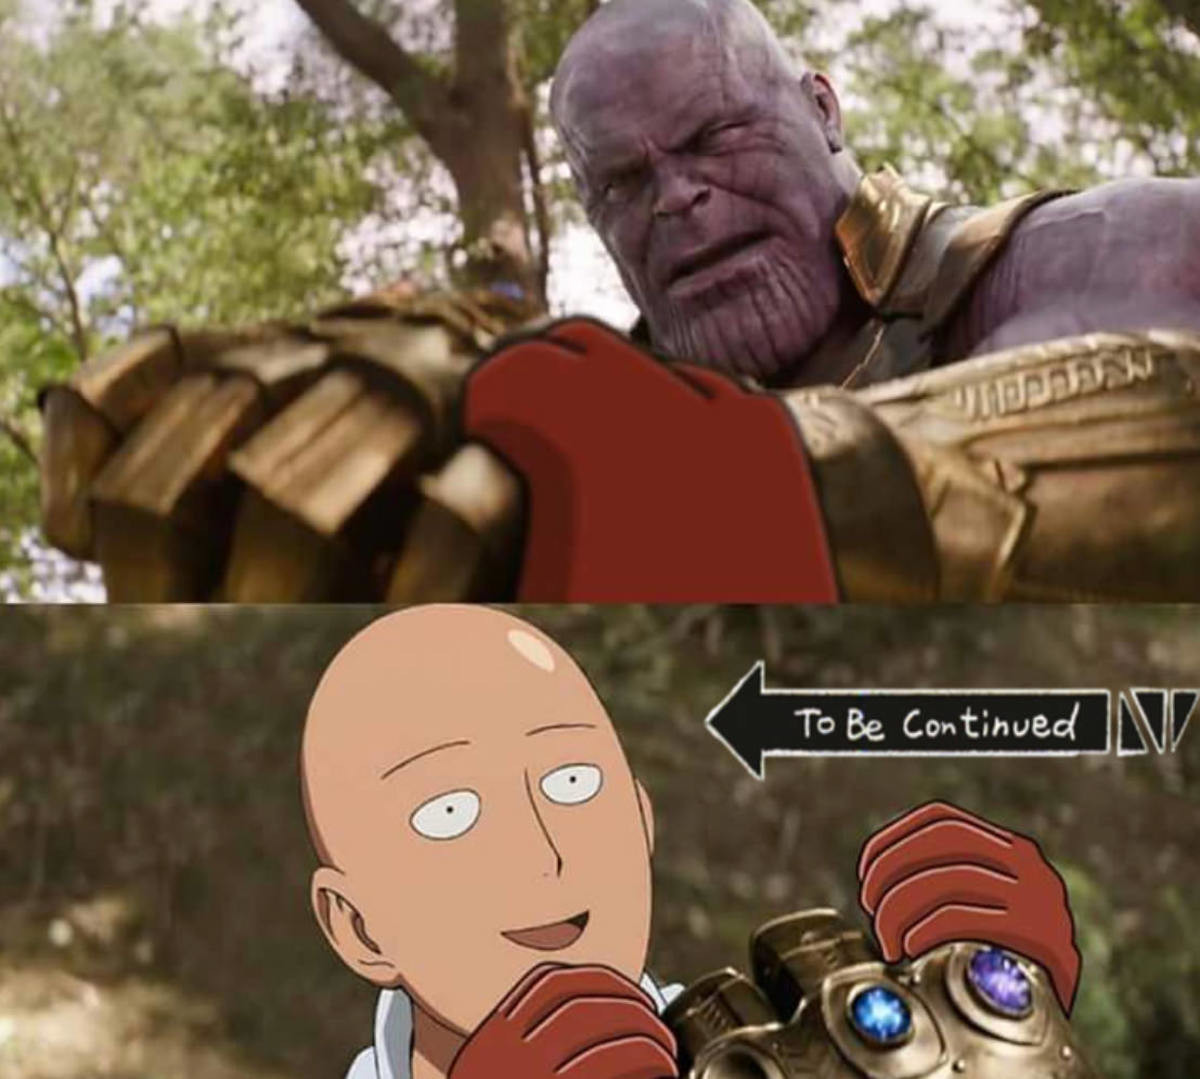 Things Just Got Interesting. .. I actually had a dream one time were this kinda happened. So basically in the dream I was watching Infinity War Part 2. I wasn't watching it in a theatre, but a